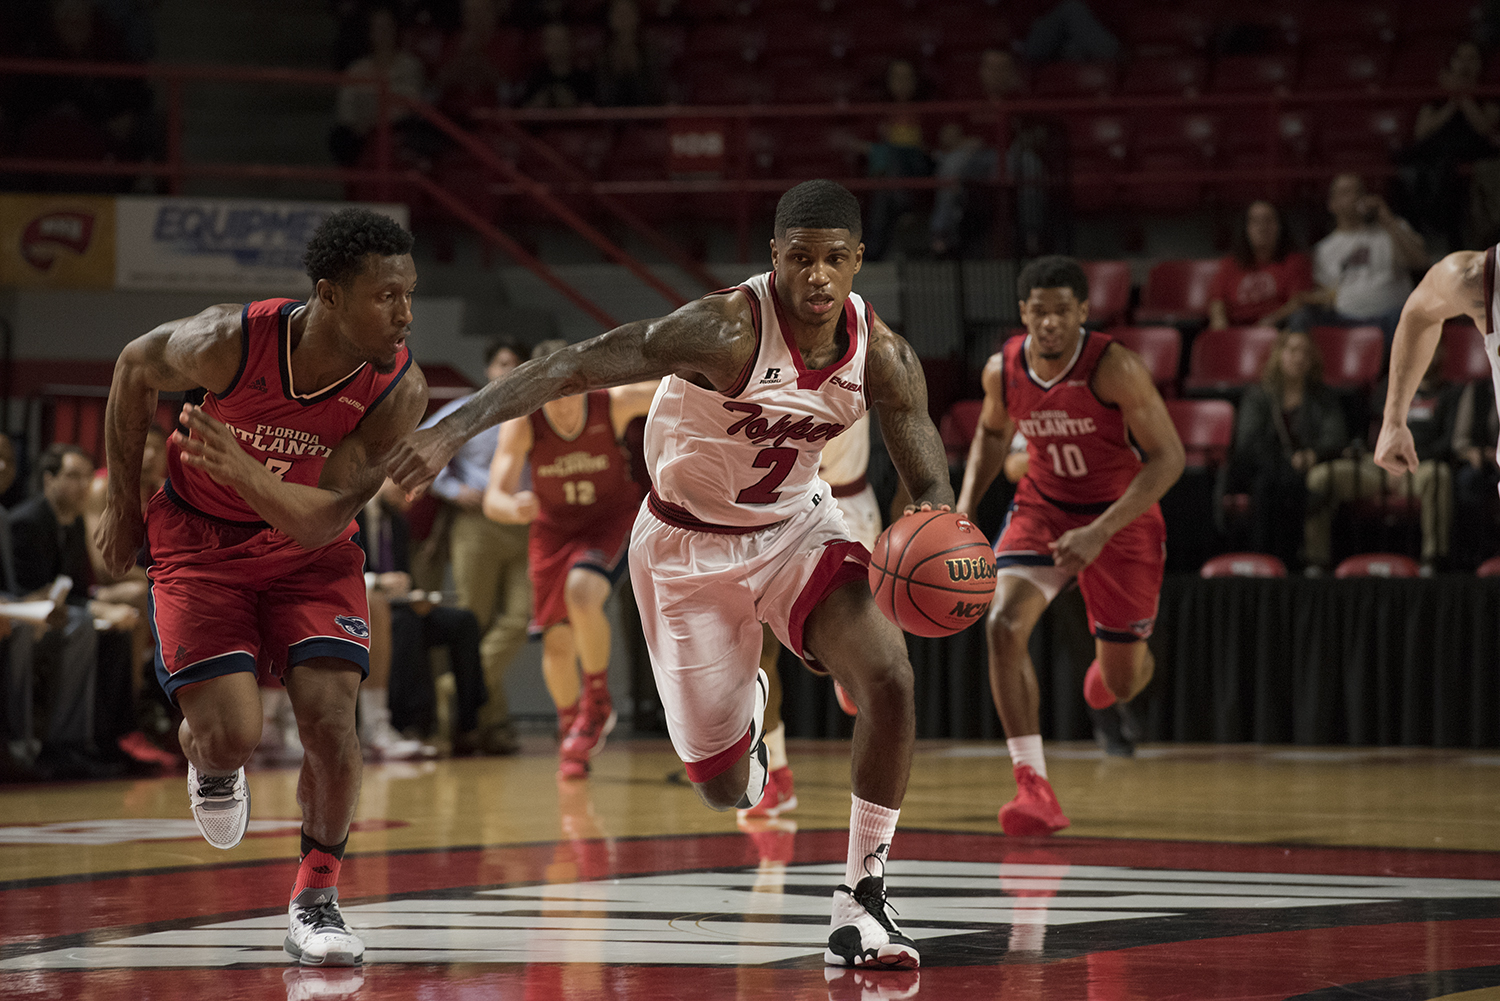 Redshirt senior guard Aaron Cosby drives the ball down the court after stealing it from Florida Atlantic junior Adonis Filer during the second half of WKUs game against the Owls on Saturday. Cosby scored 17 points on the day. Jennifer King/HERALD